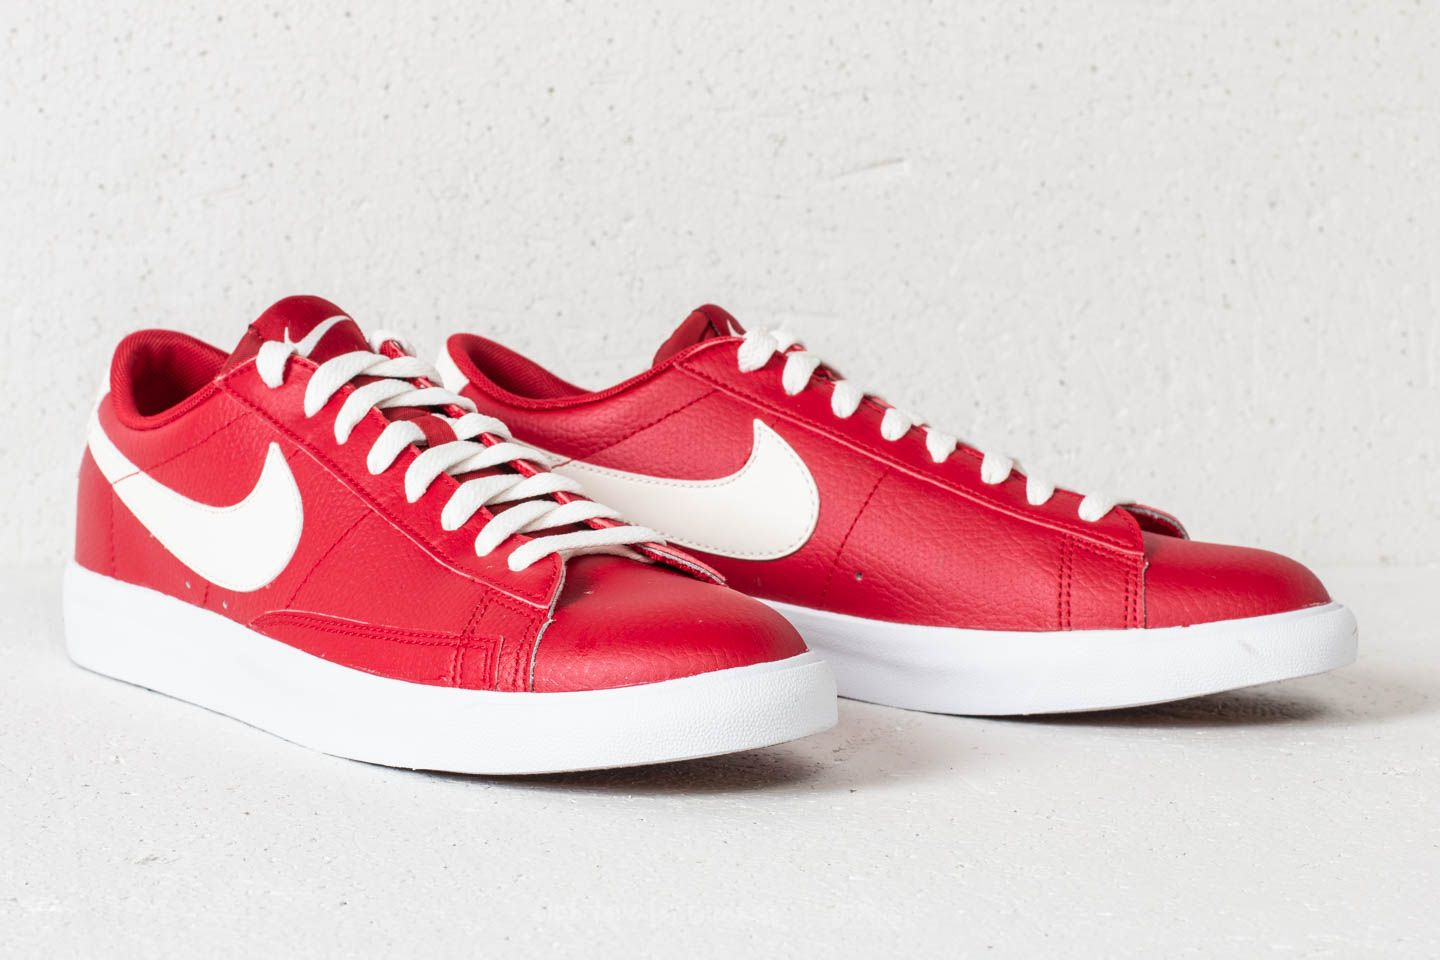 Nike Blazer Low Leather Gym Red  Sail at a great price £76 buy at a68baa8e5